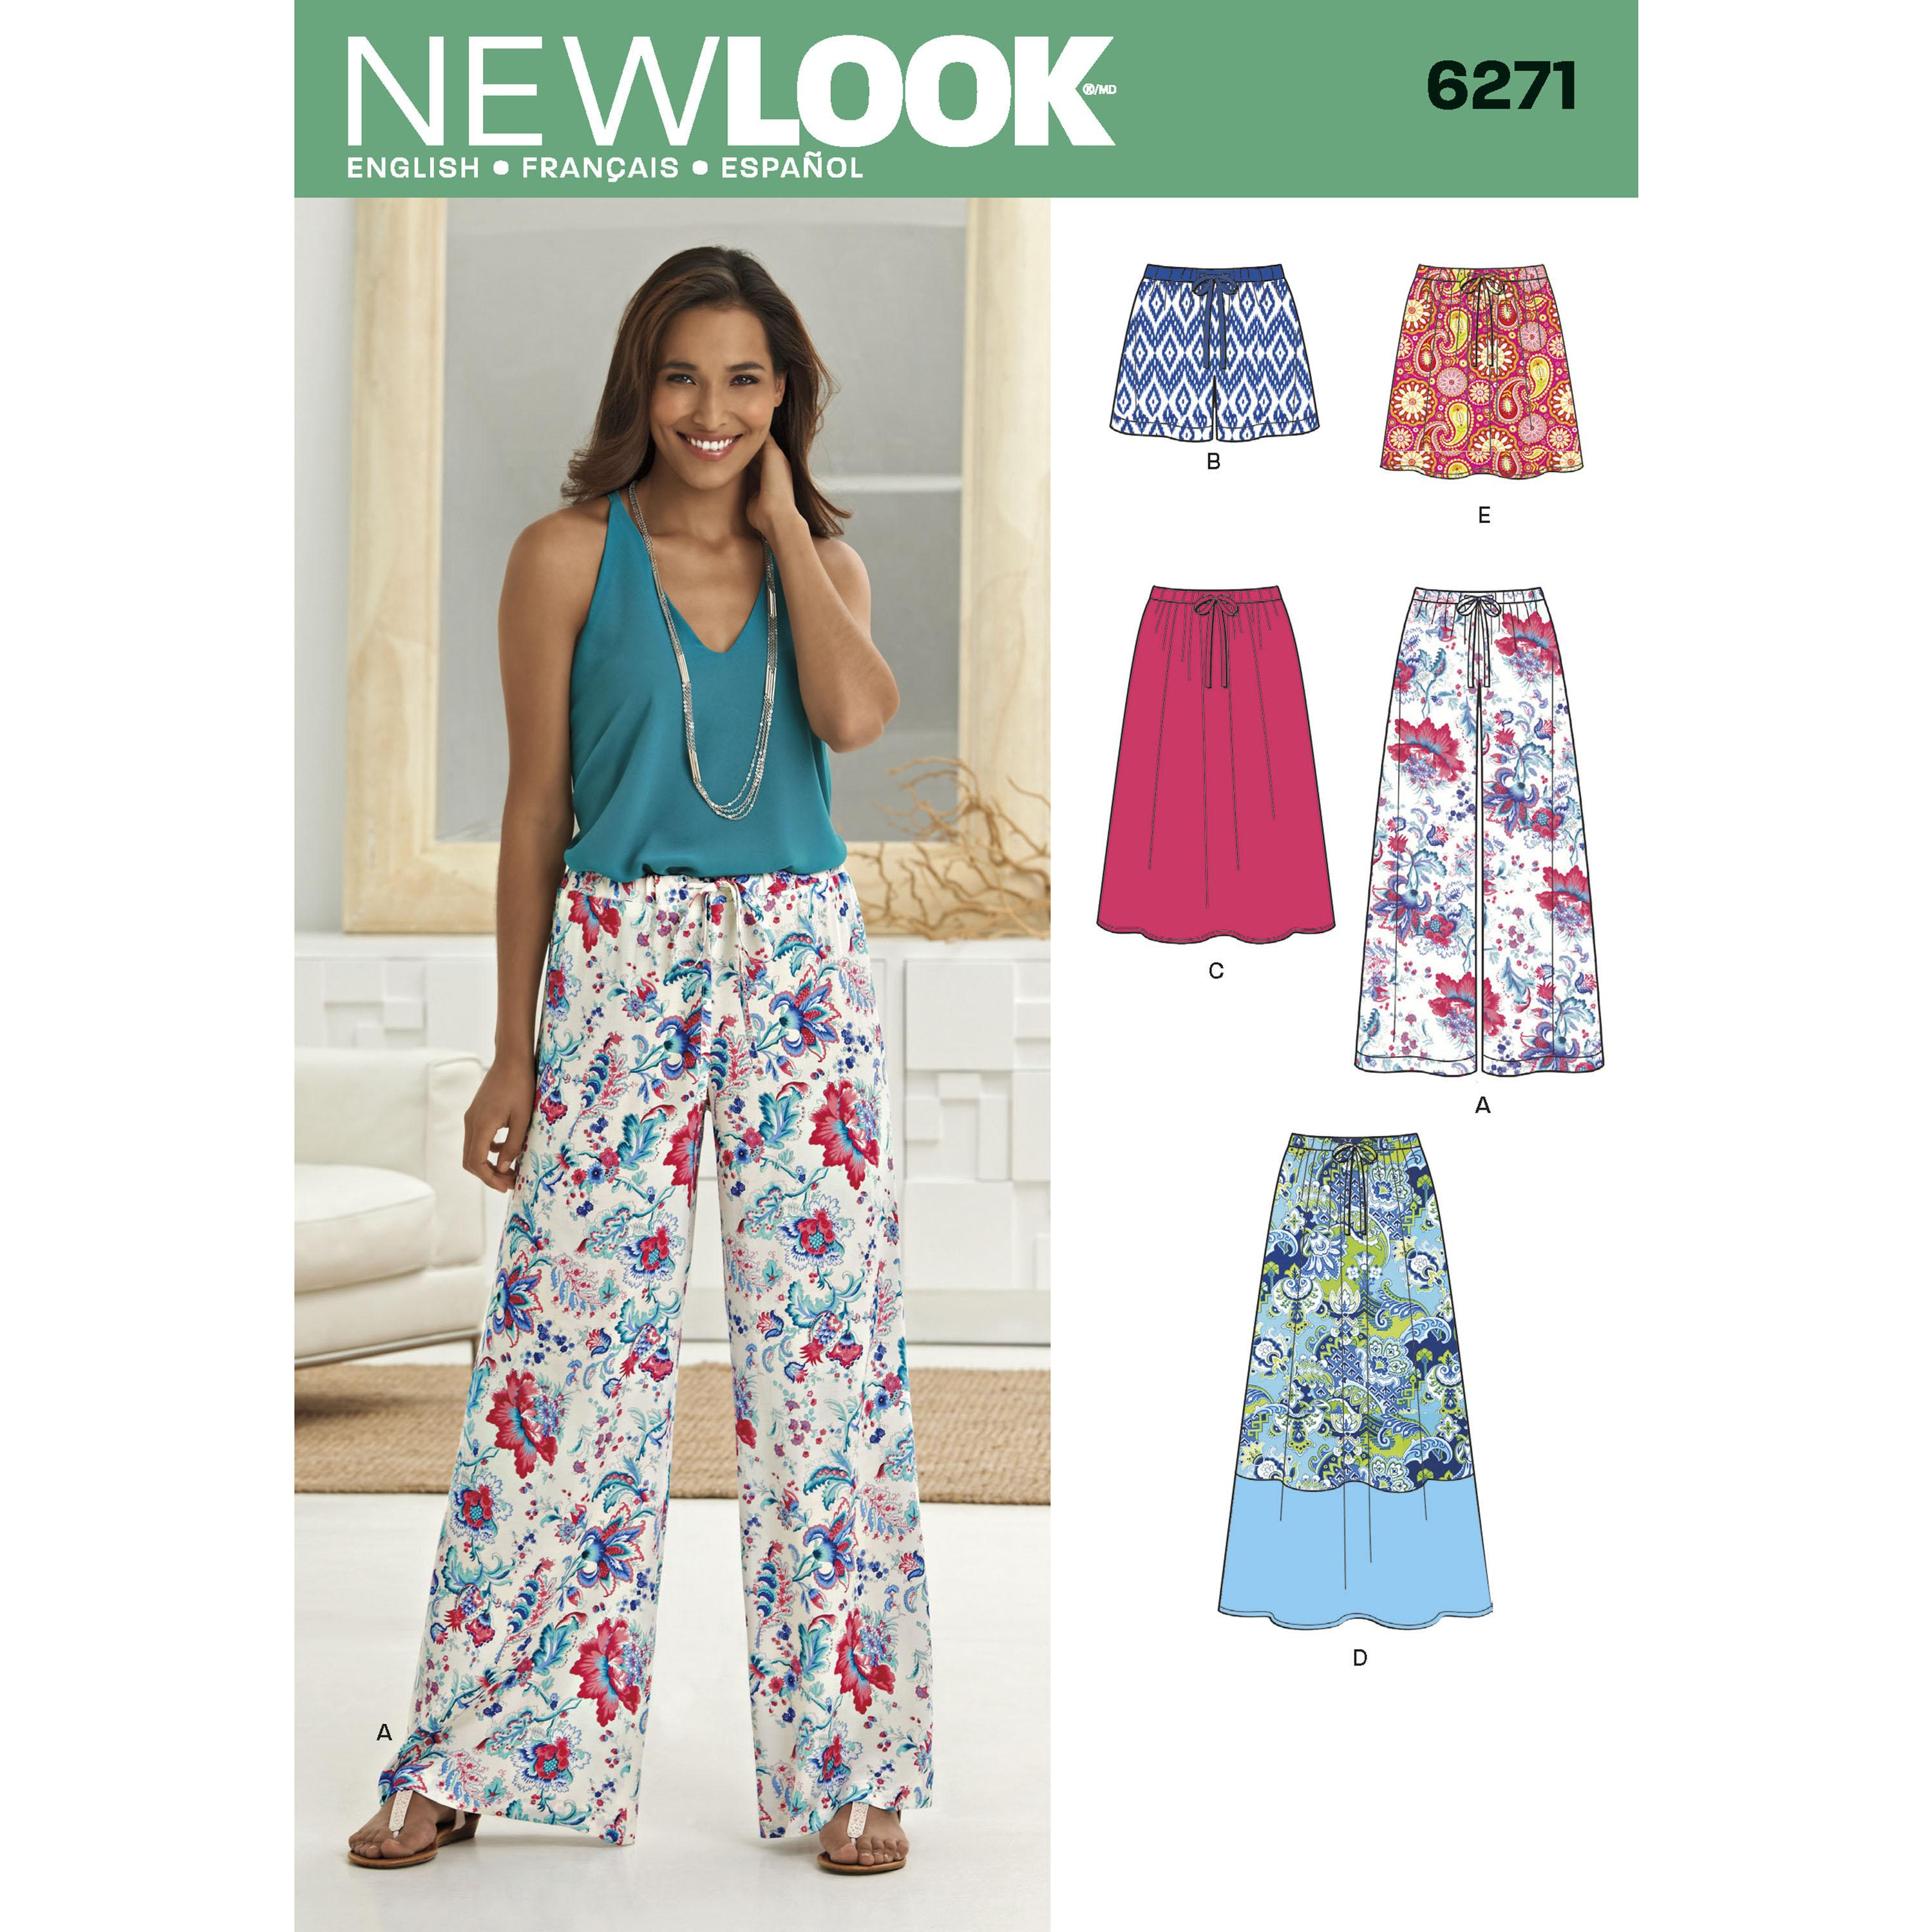 NewLook N6271 Misses' Skirt in Three Lengths and Pants or Shorts